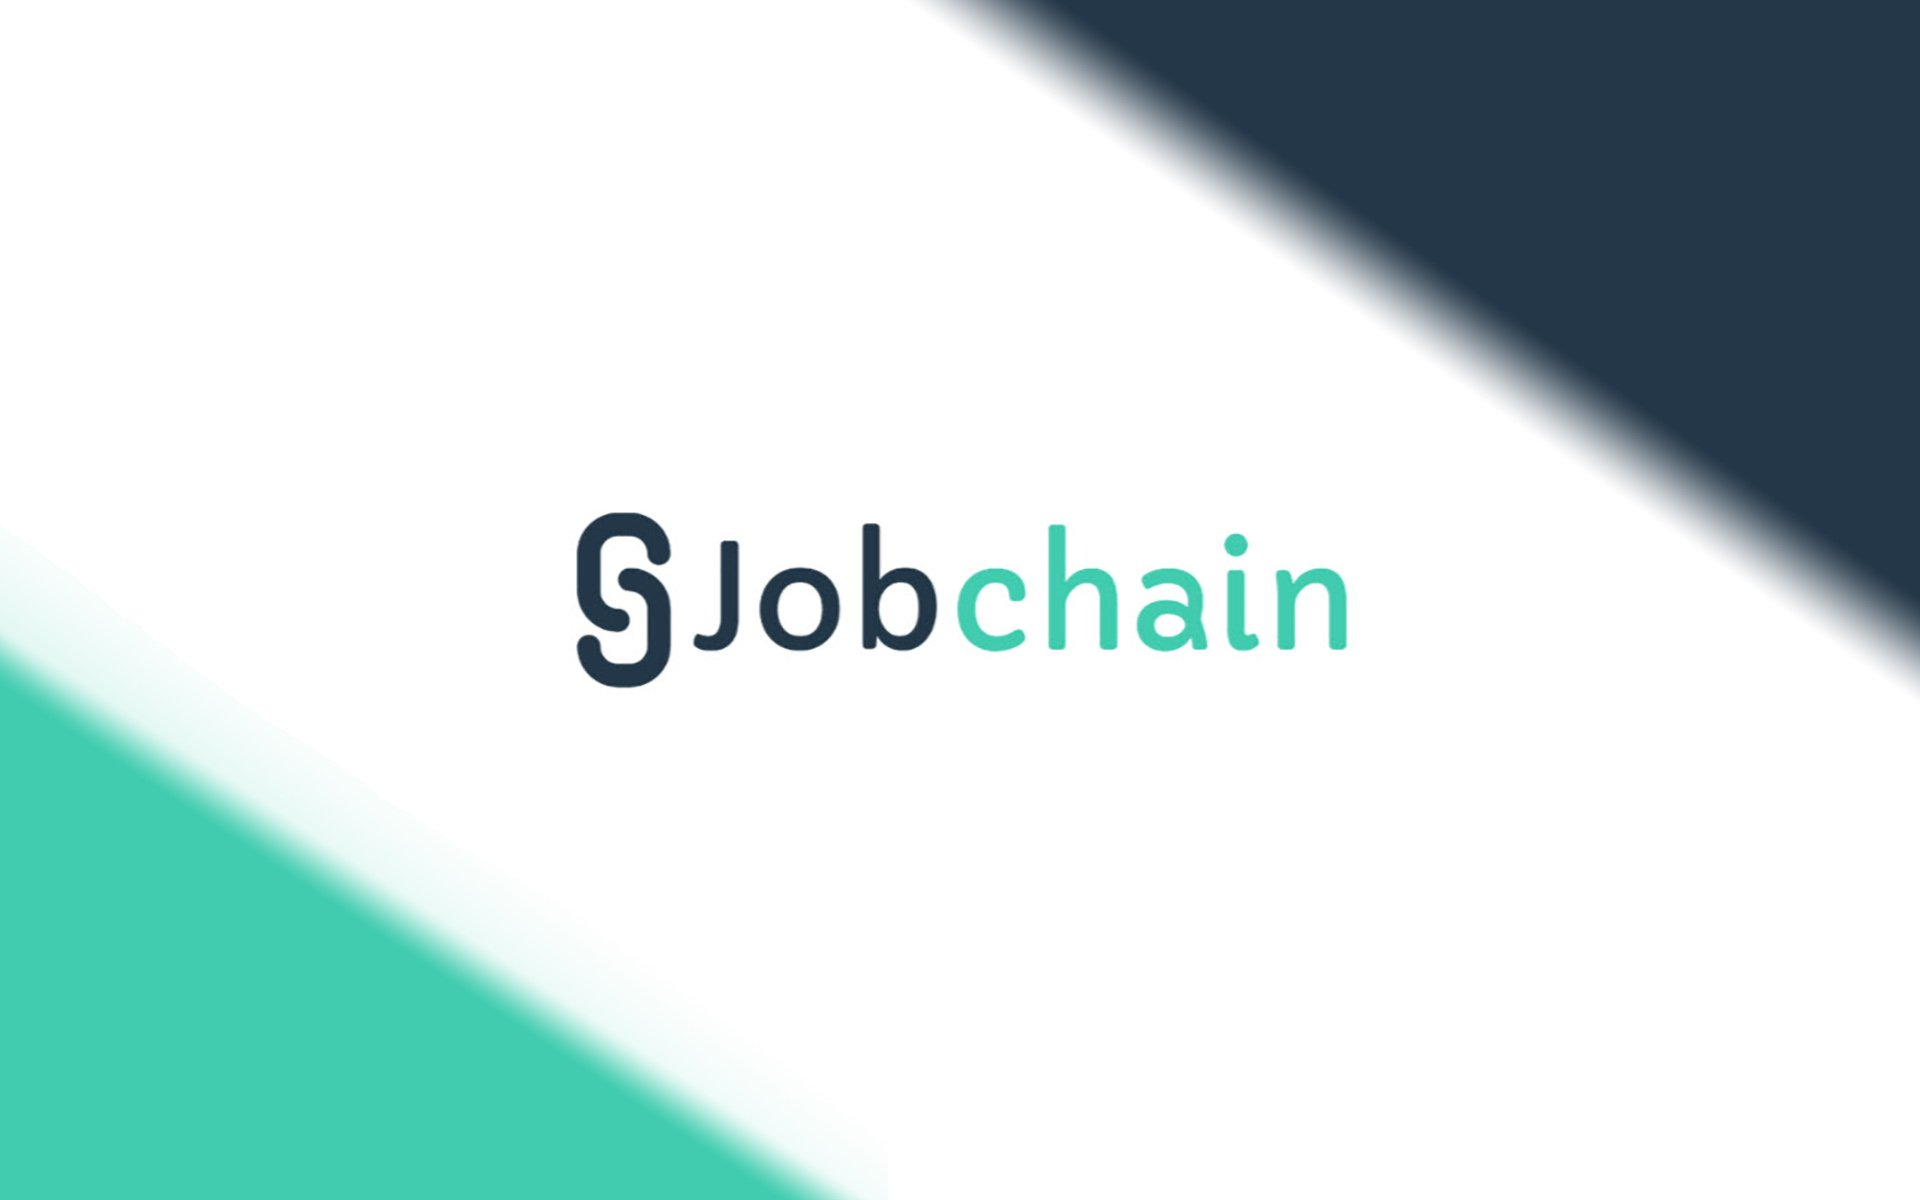 JobChain Readies For Impending ICO Pre-Sale – Adds A New Paradigm To The Global Job Market Industry